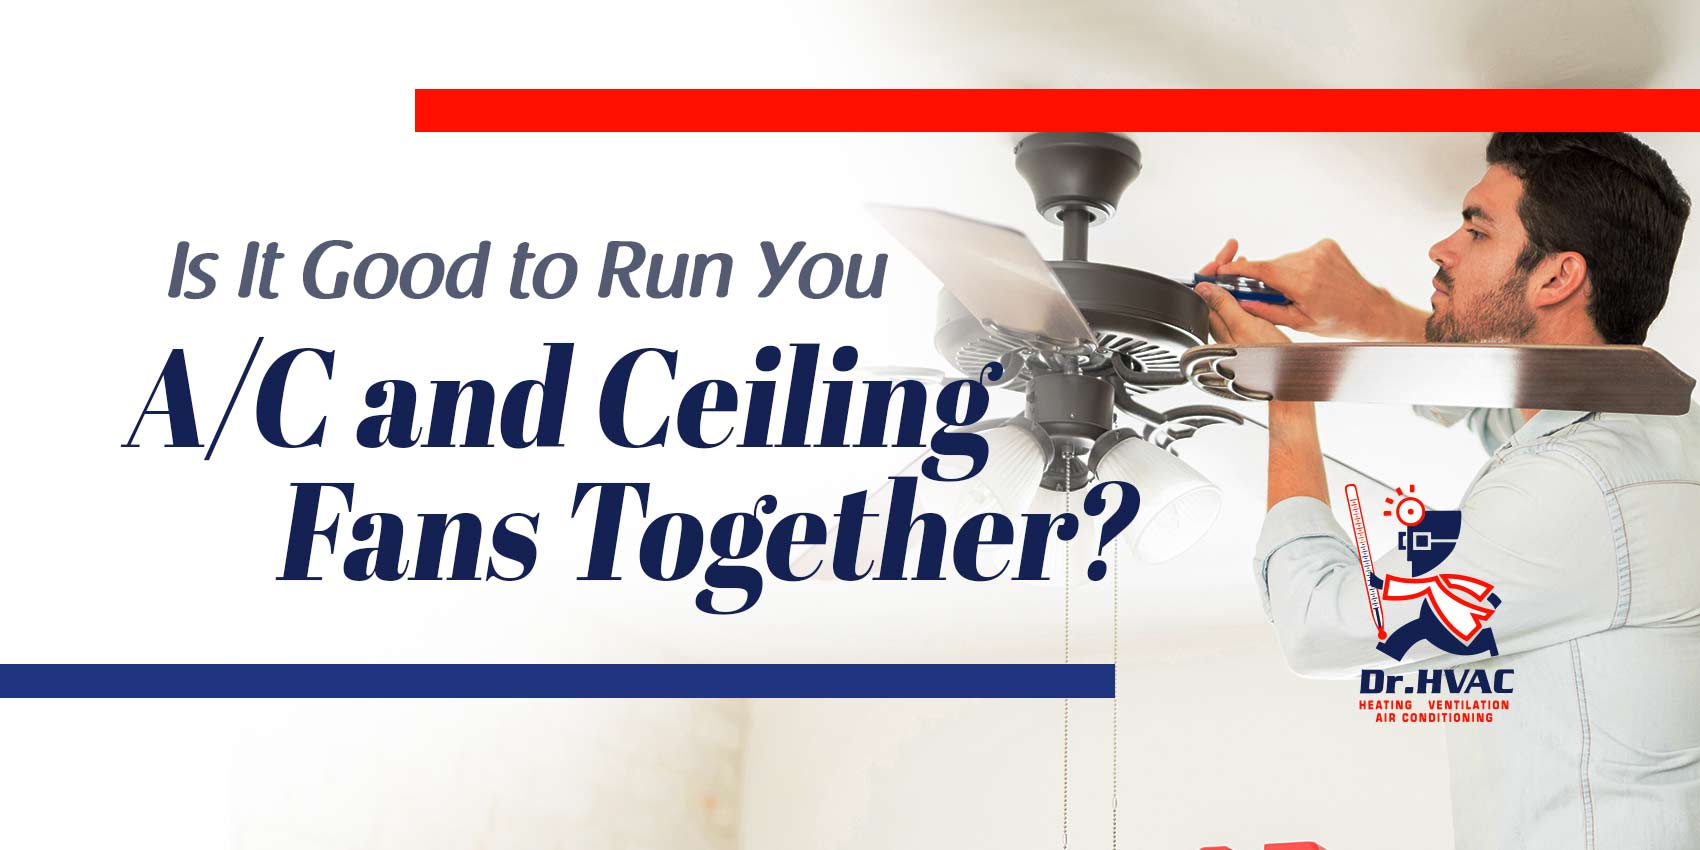 Is It Good to Run Your A/C and Ceiling Fans Together?